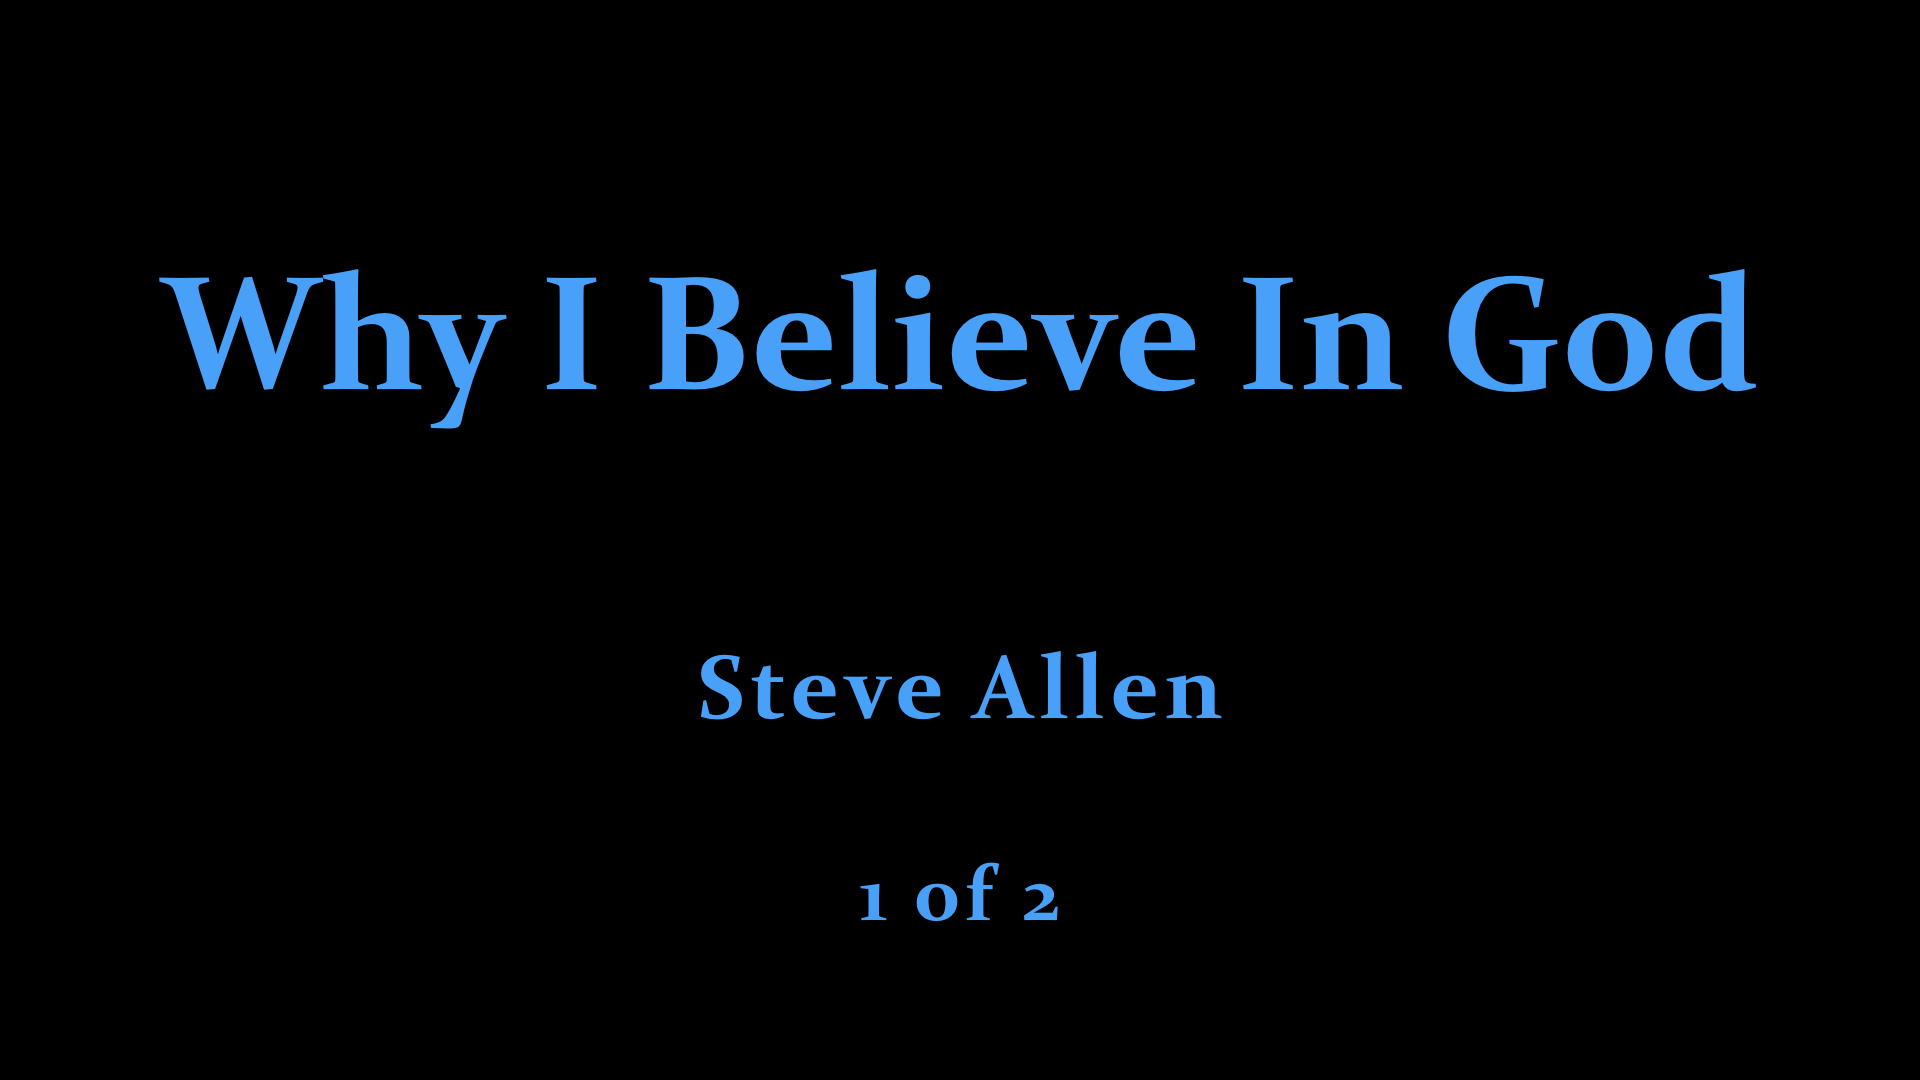 Steve Allen - Why I Believe In God (1 of 2).jpeg